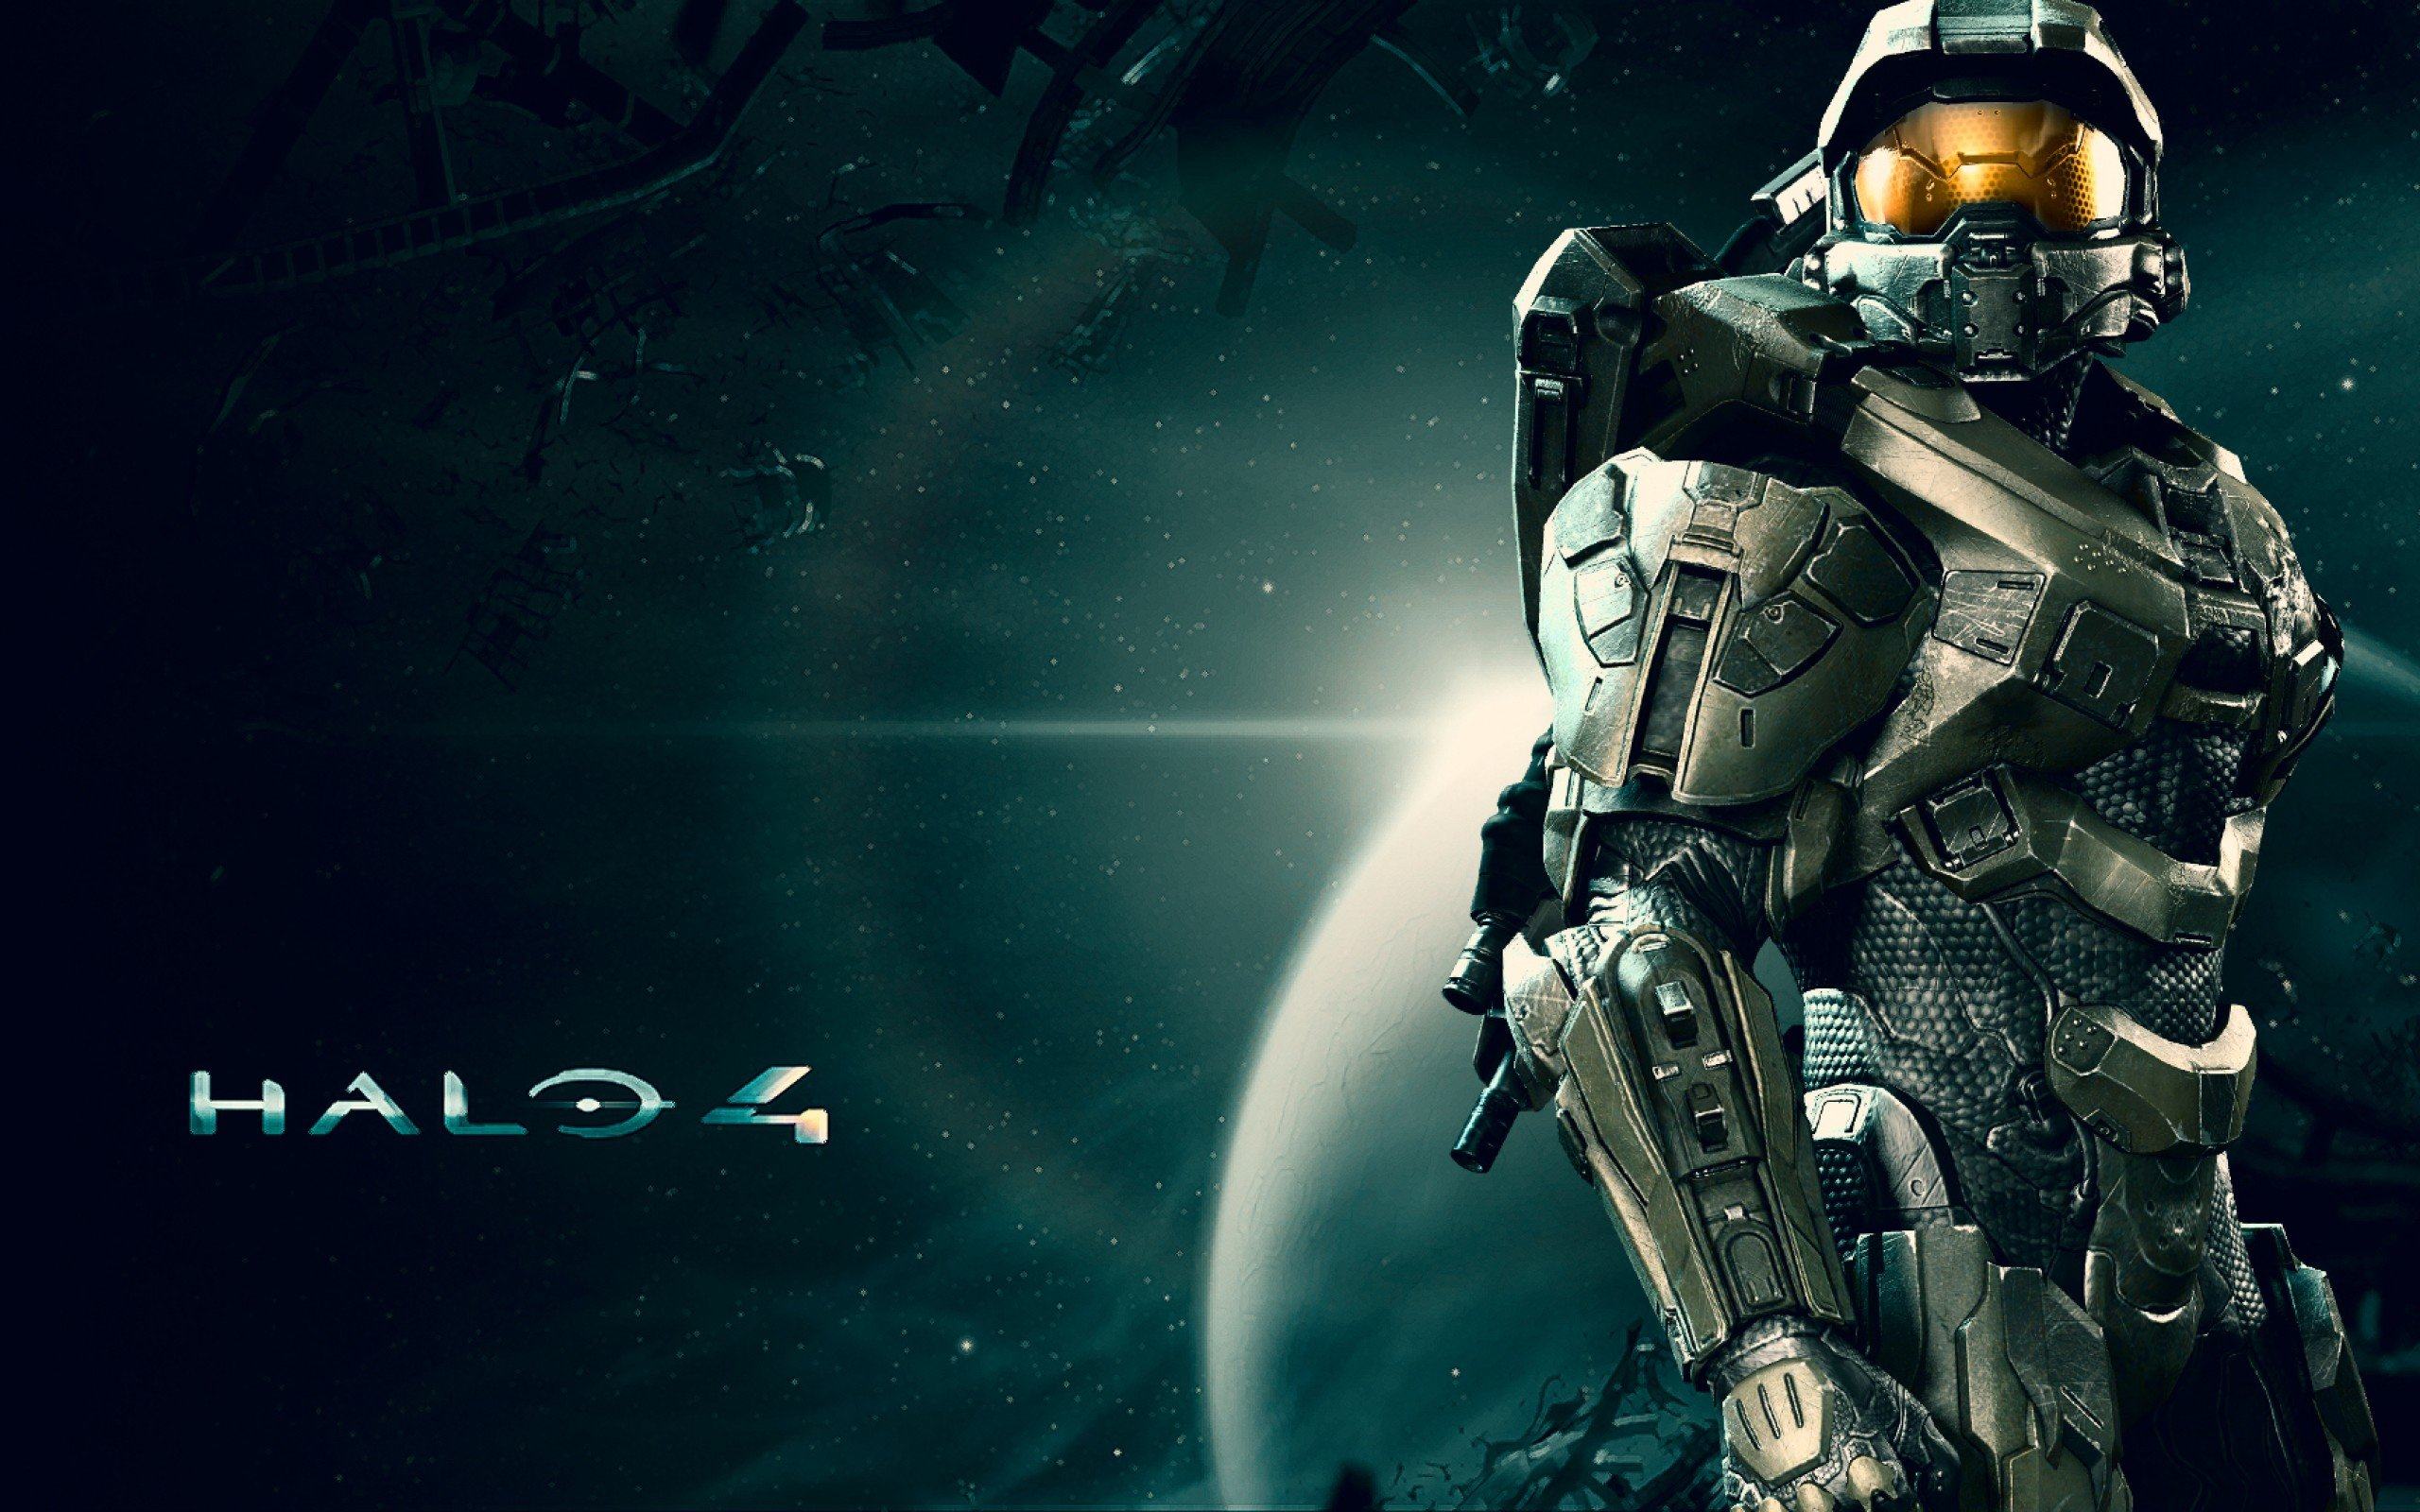 Free Download Halo 4 Wallpaper ID278236 Hd 2560x1600 For PC